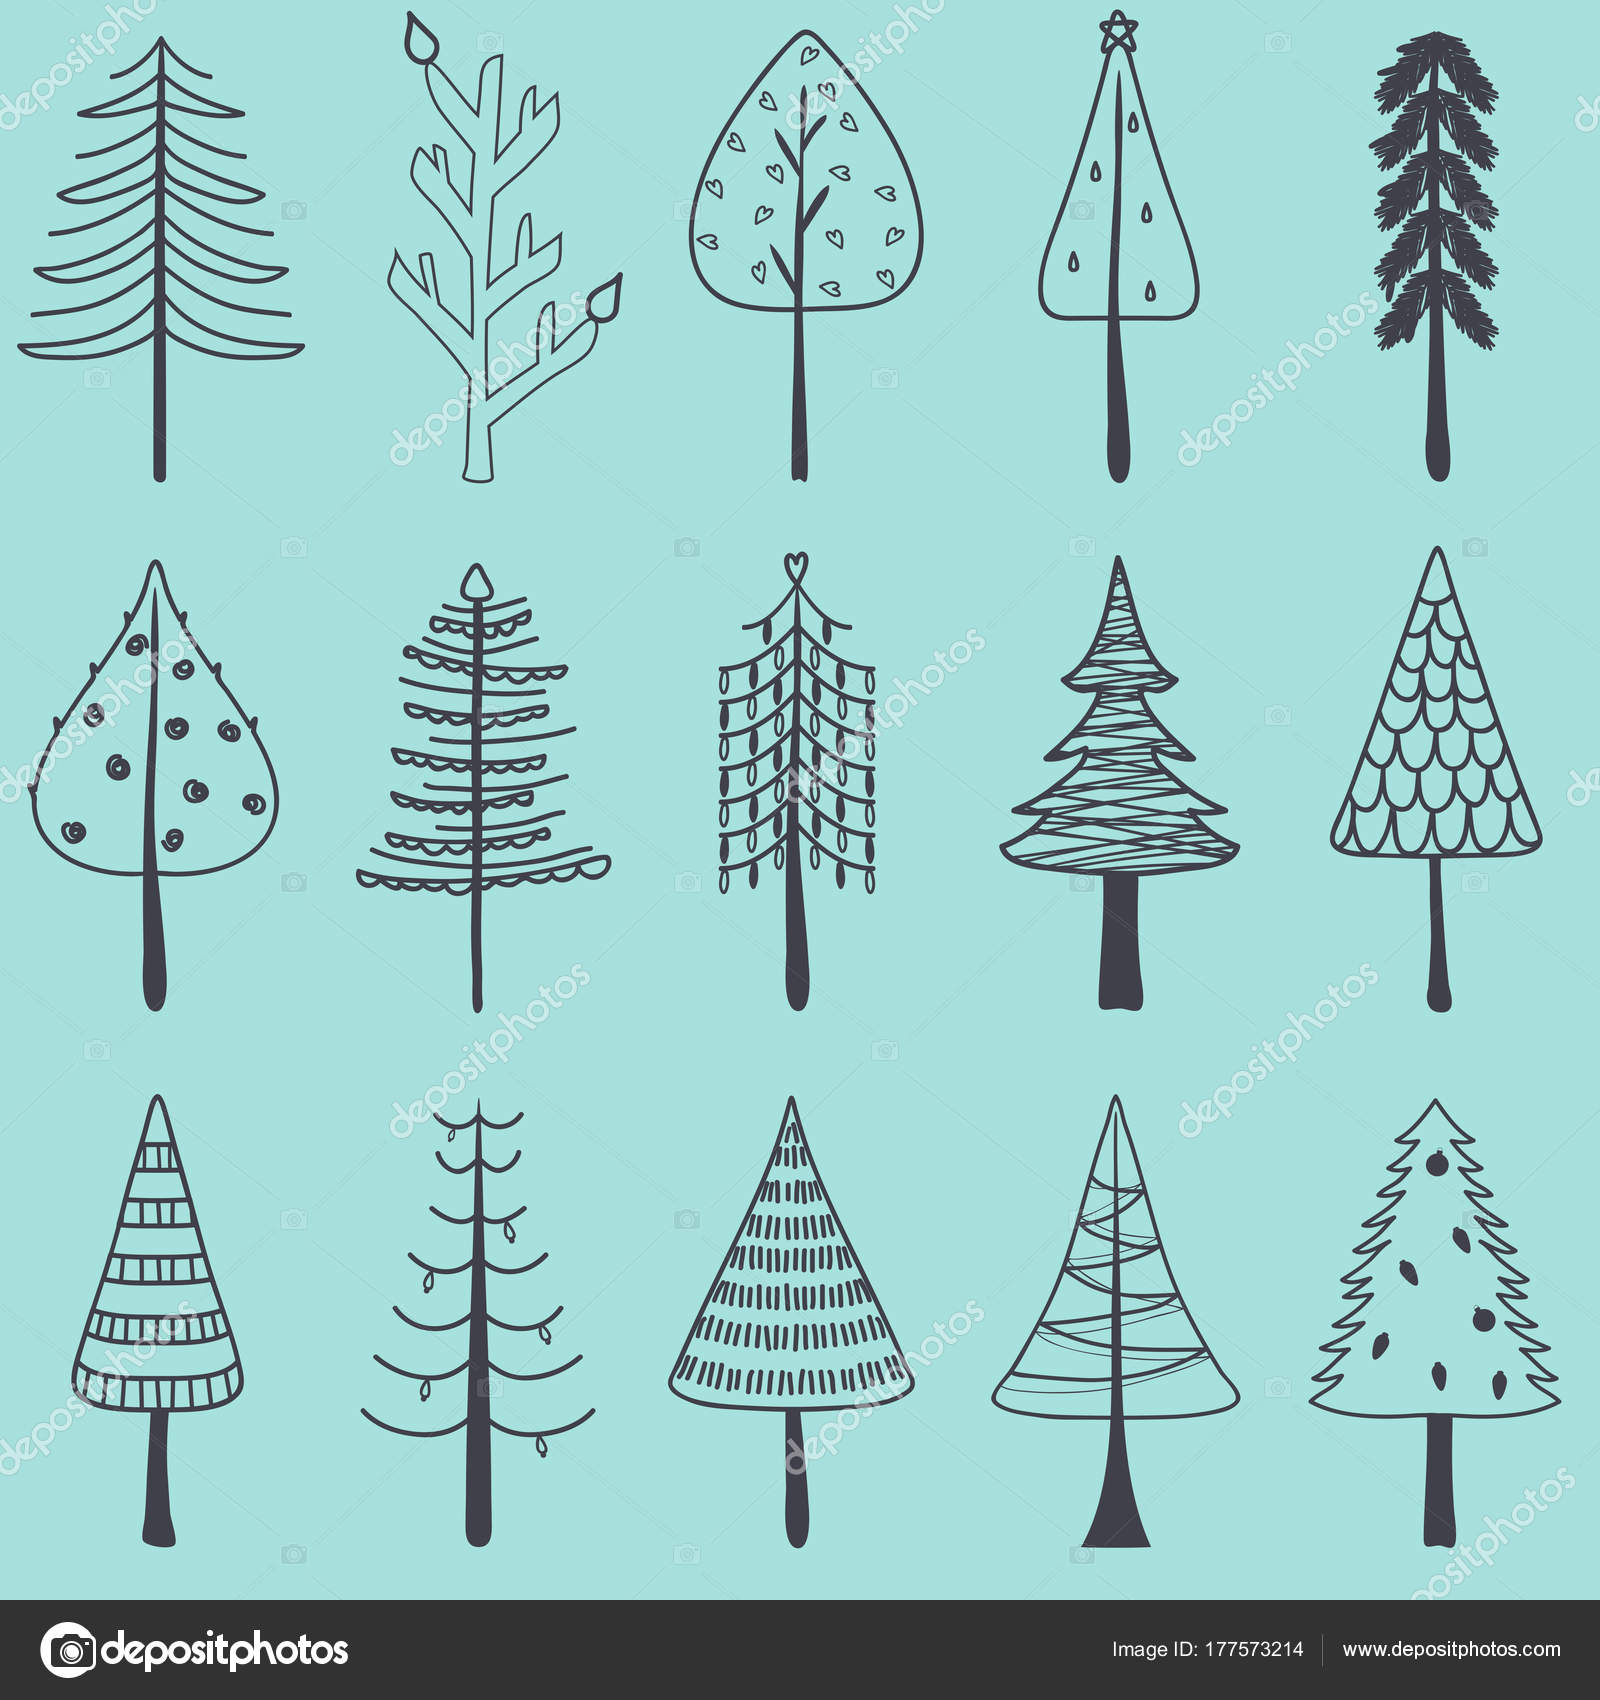 Vector Illustration Of Simple Hand Drawn Christmas Tree Set Cute Pine In Different Shapes Holiday Decorating Elements Isolated On Blue Background